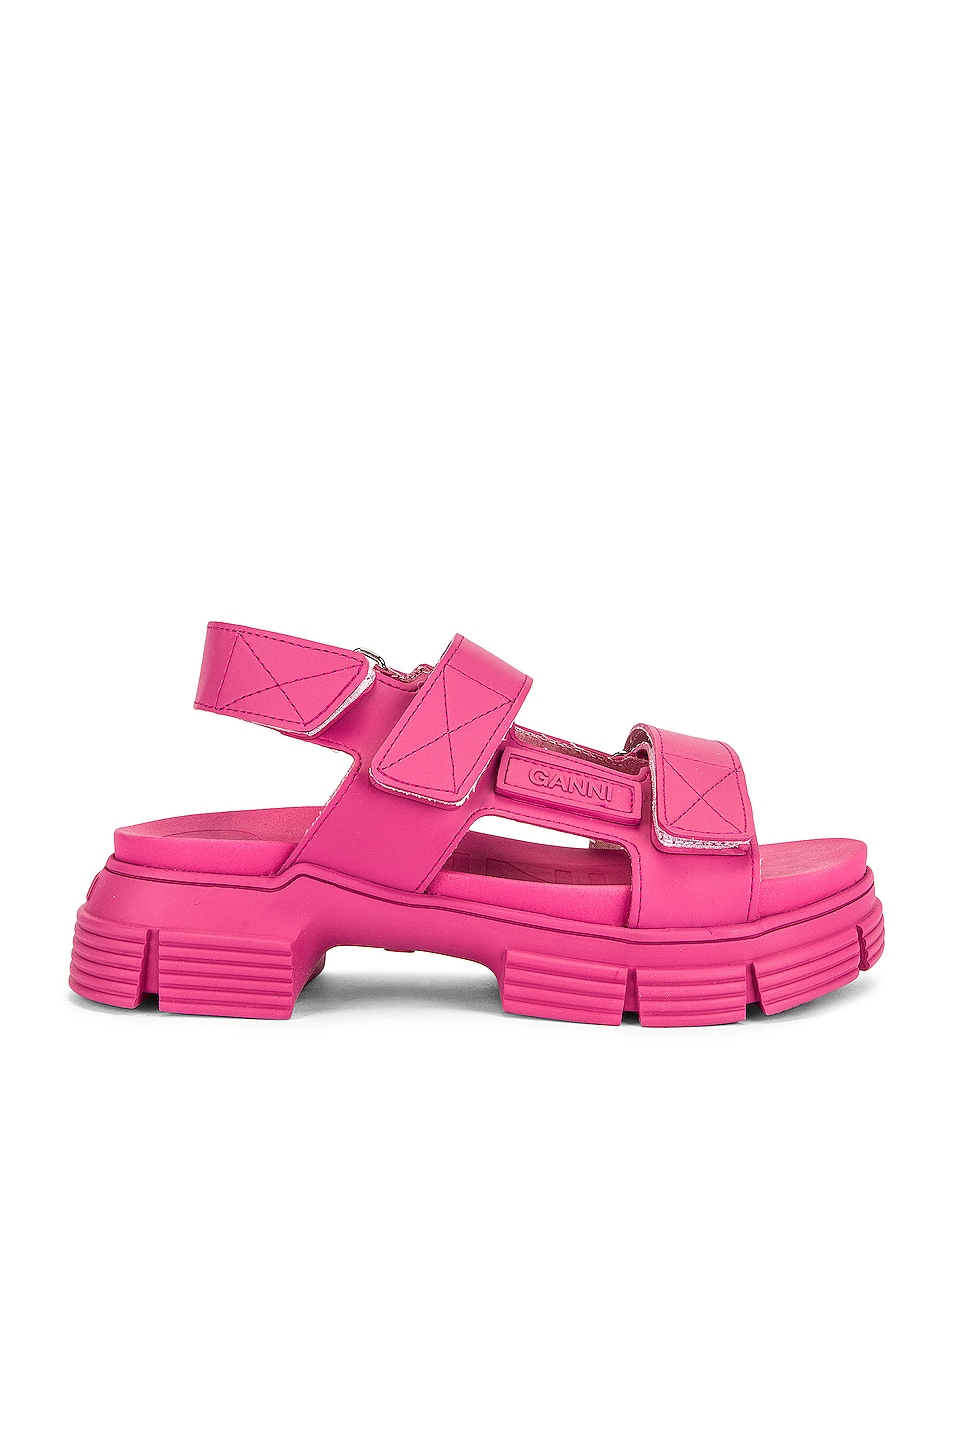 Image 1 of Ganni Recycled Rubber Sandal in Shocking Pink